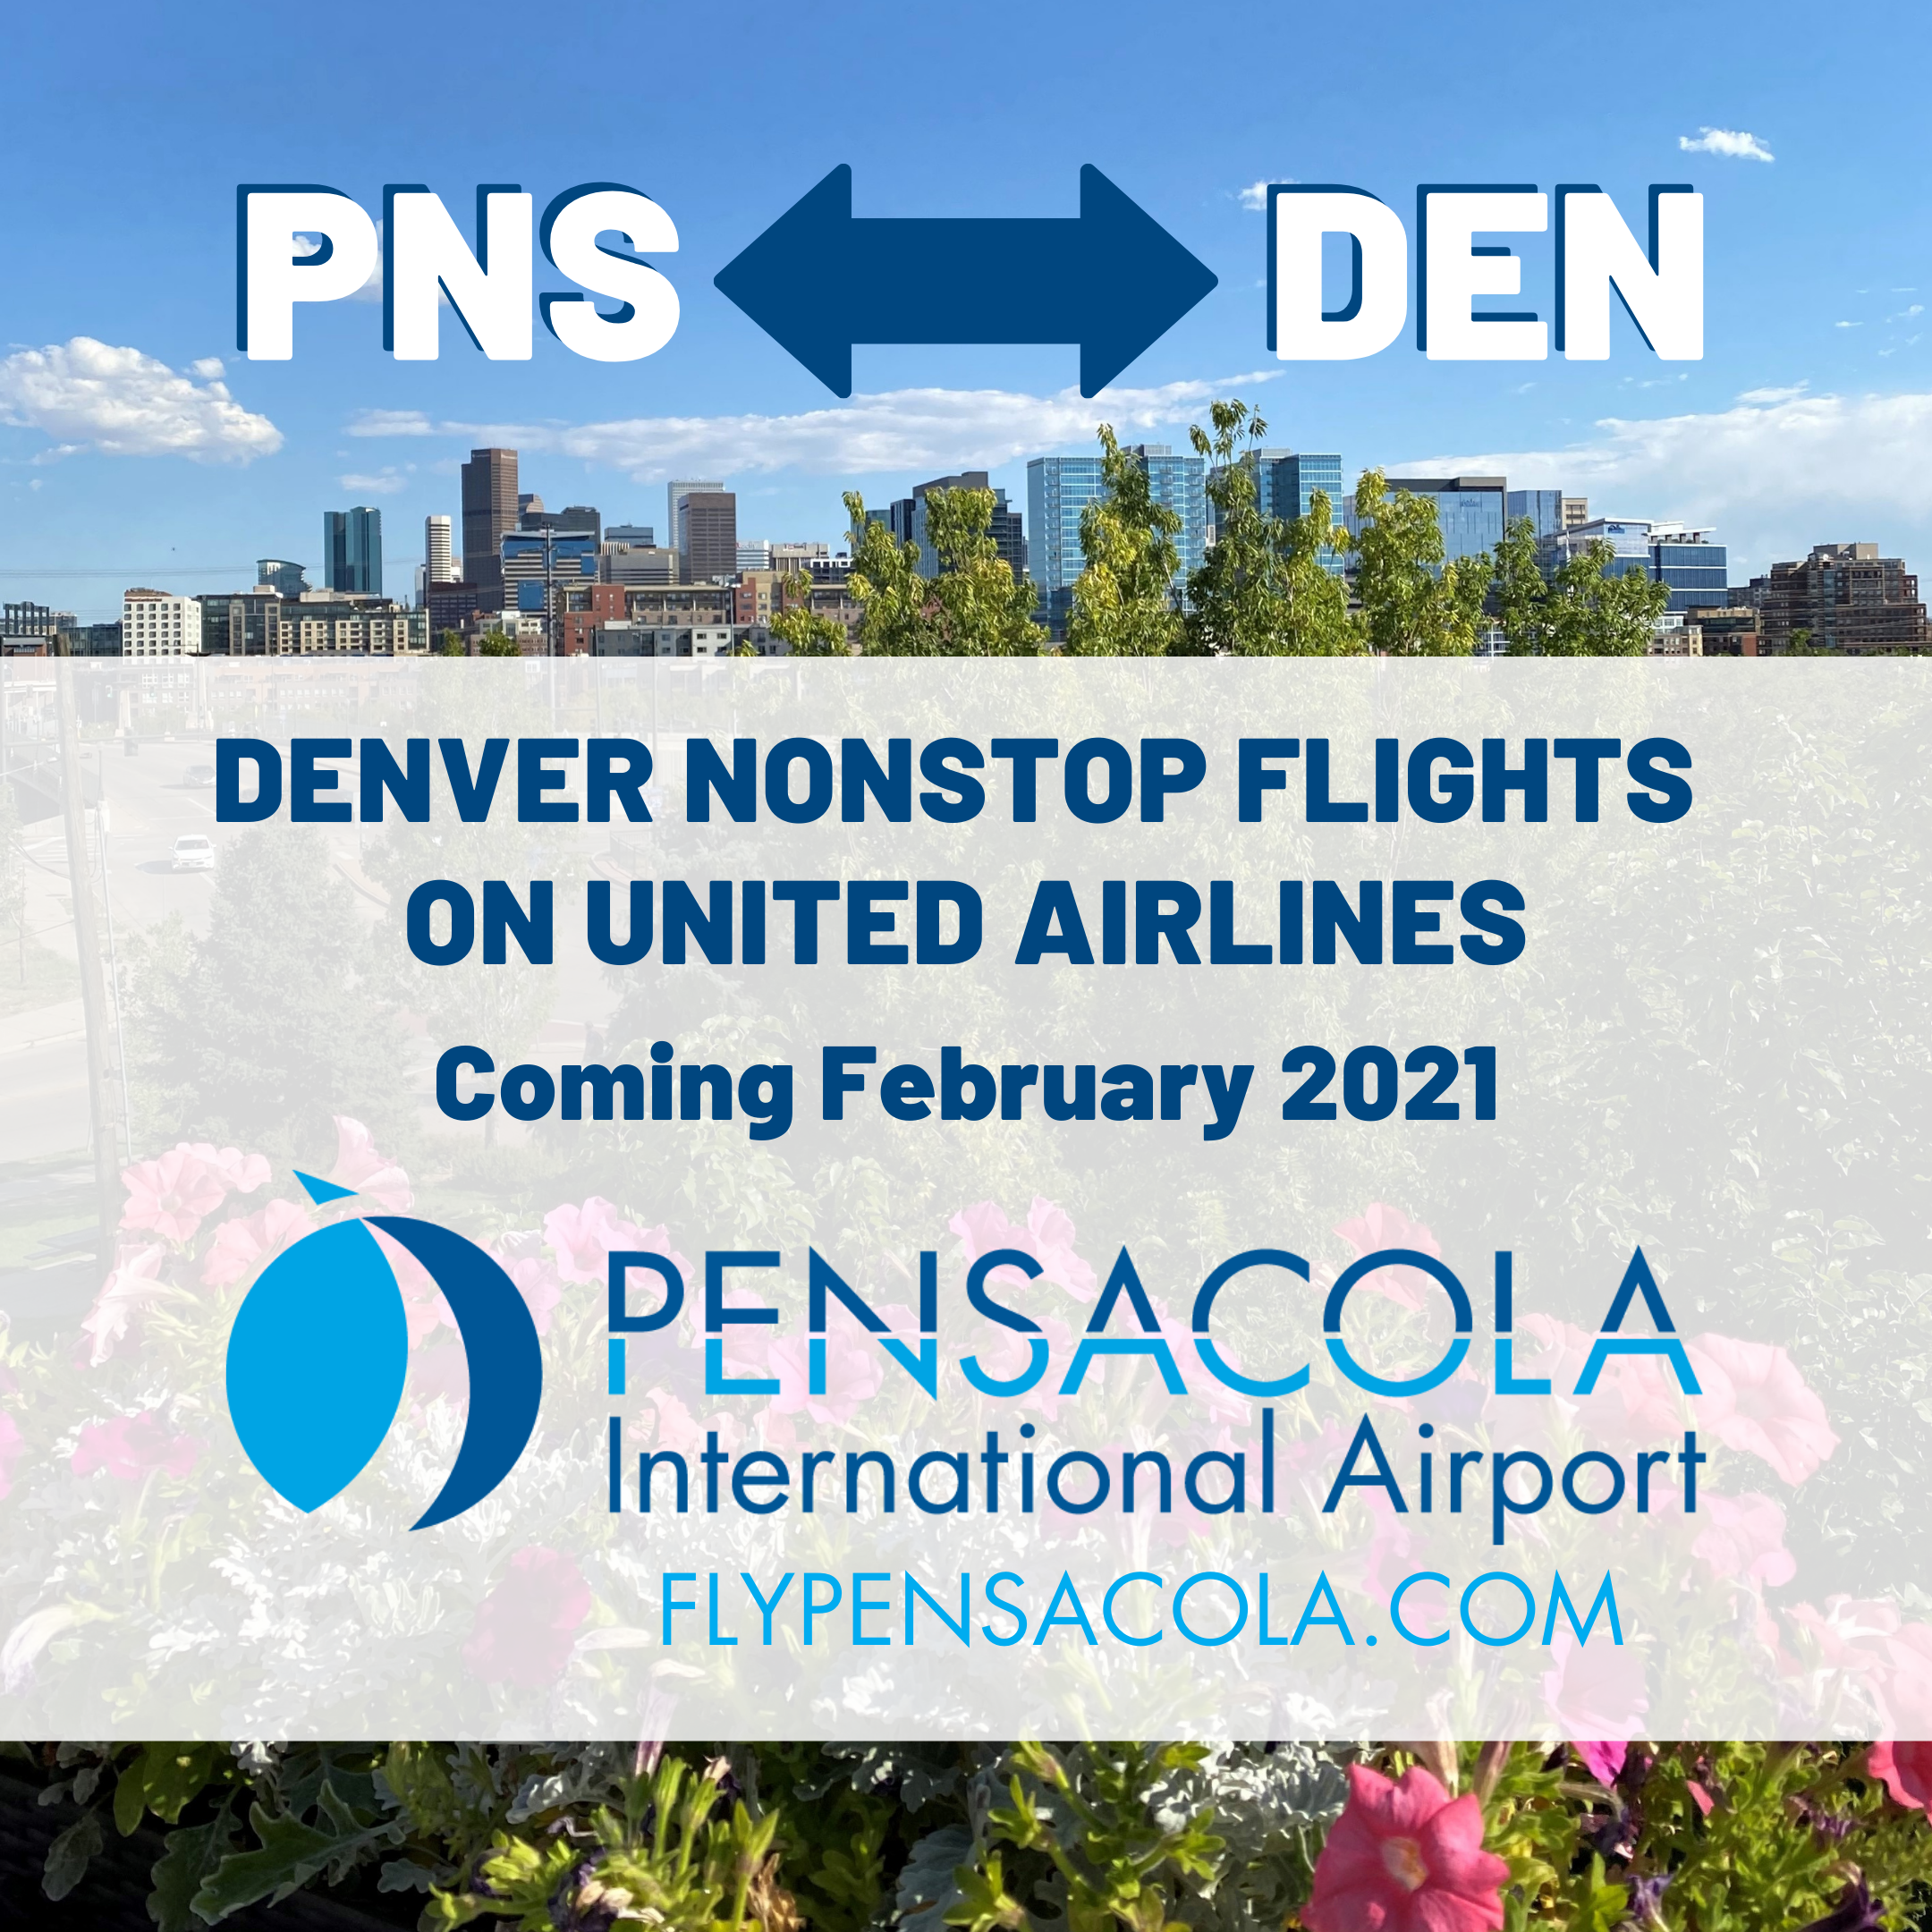 Nonstop flights to Denver coming to PNS February 2021